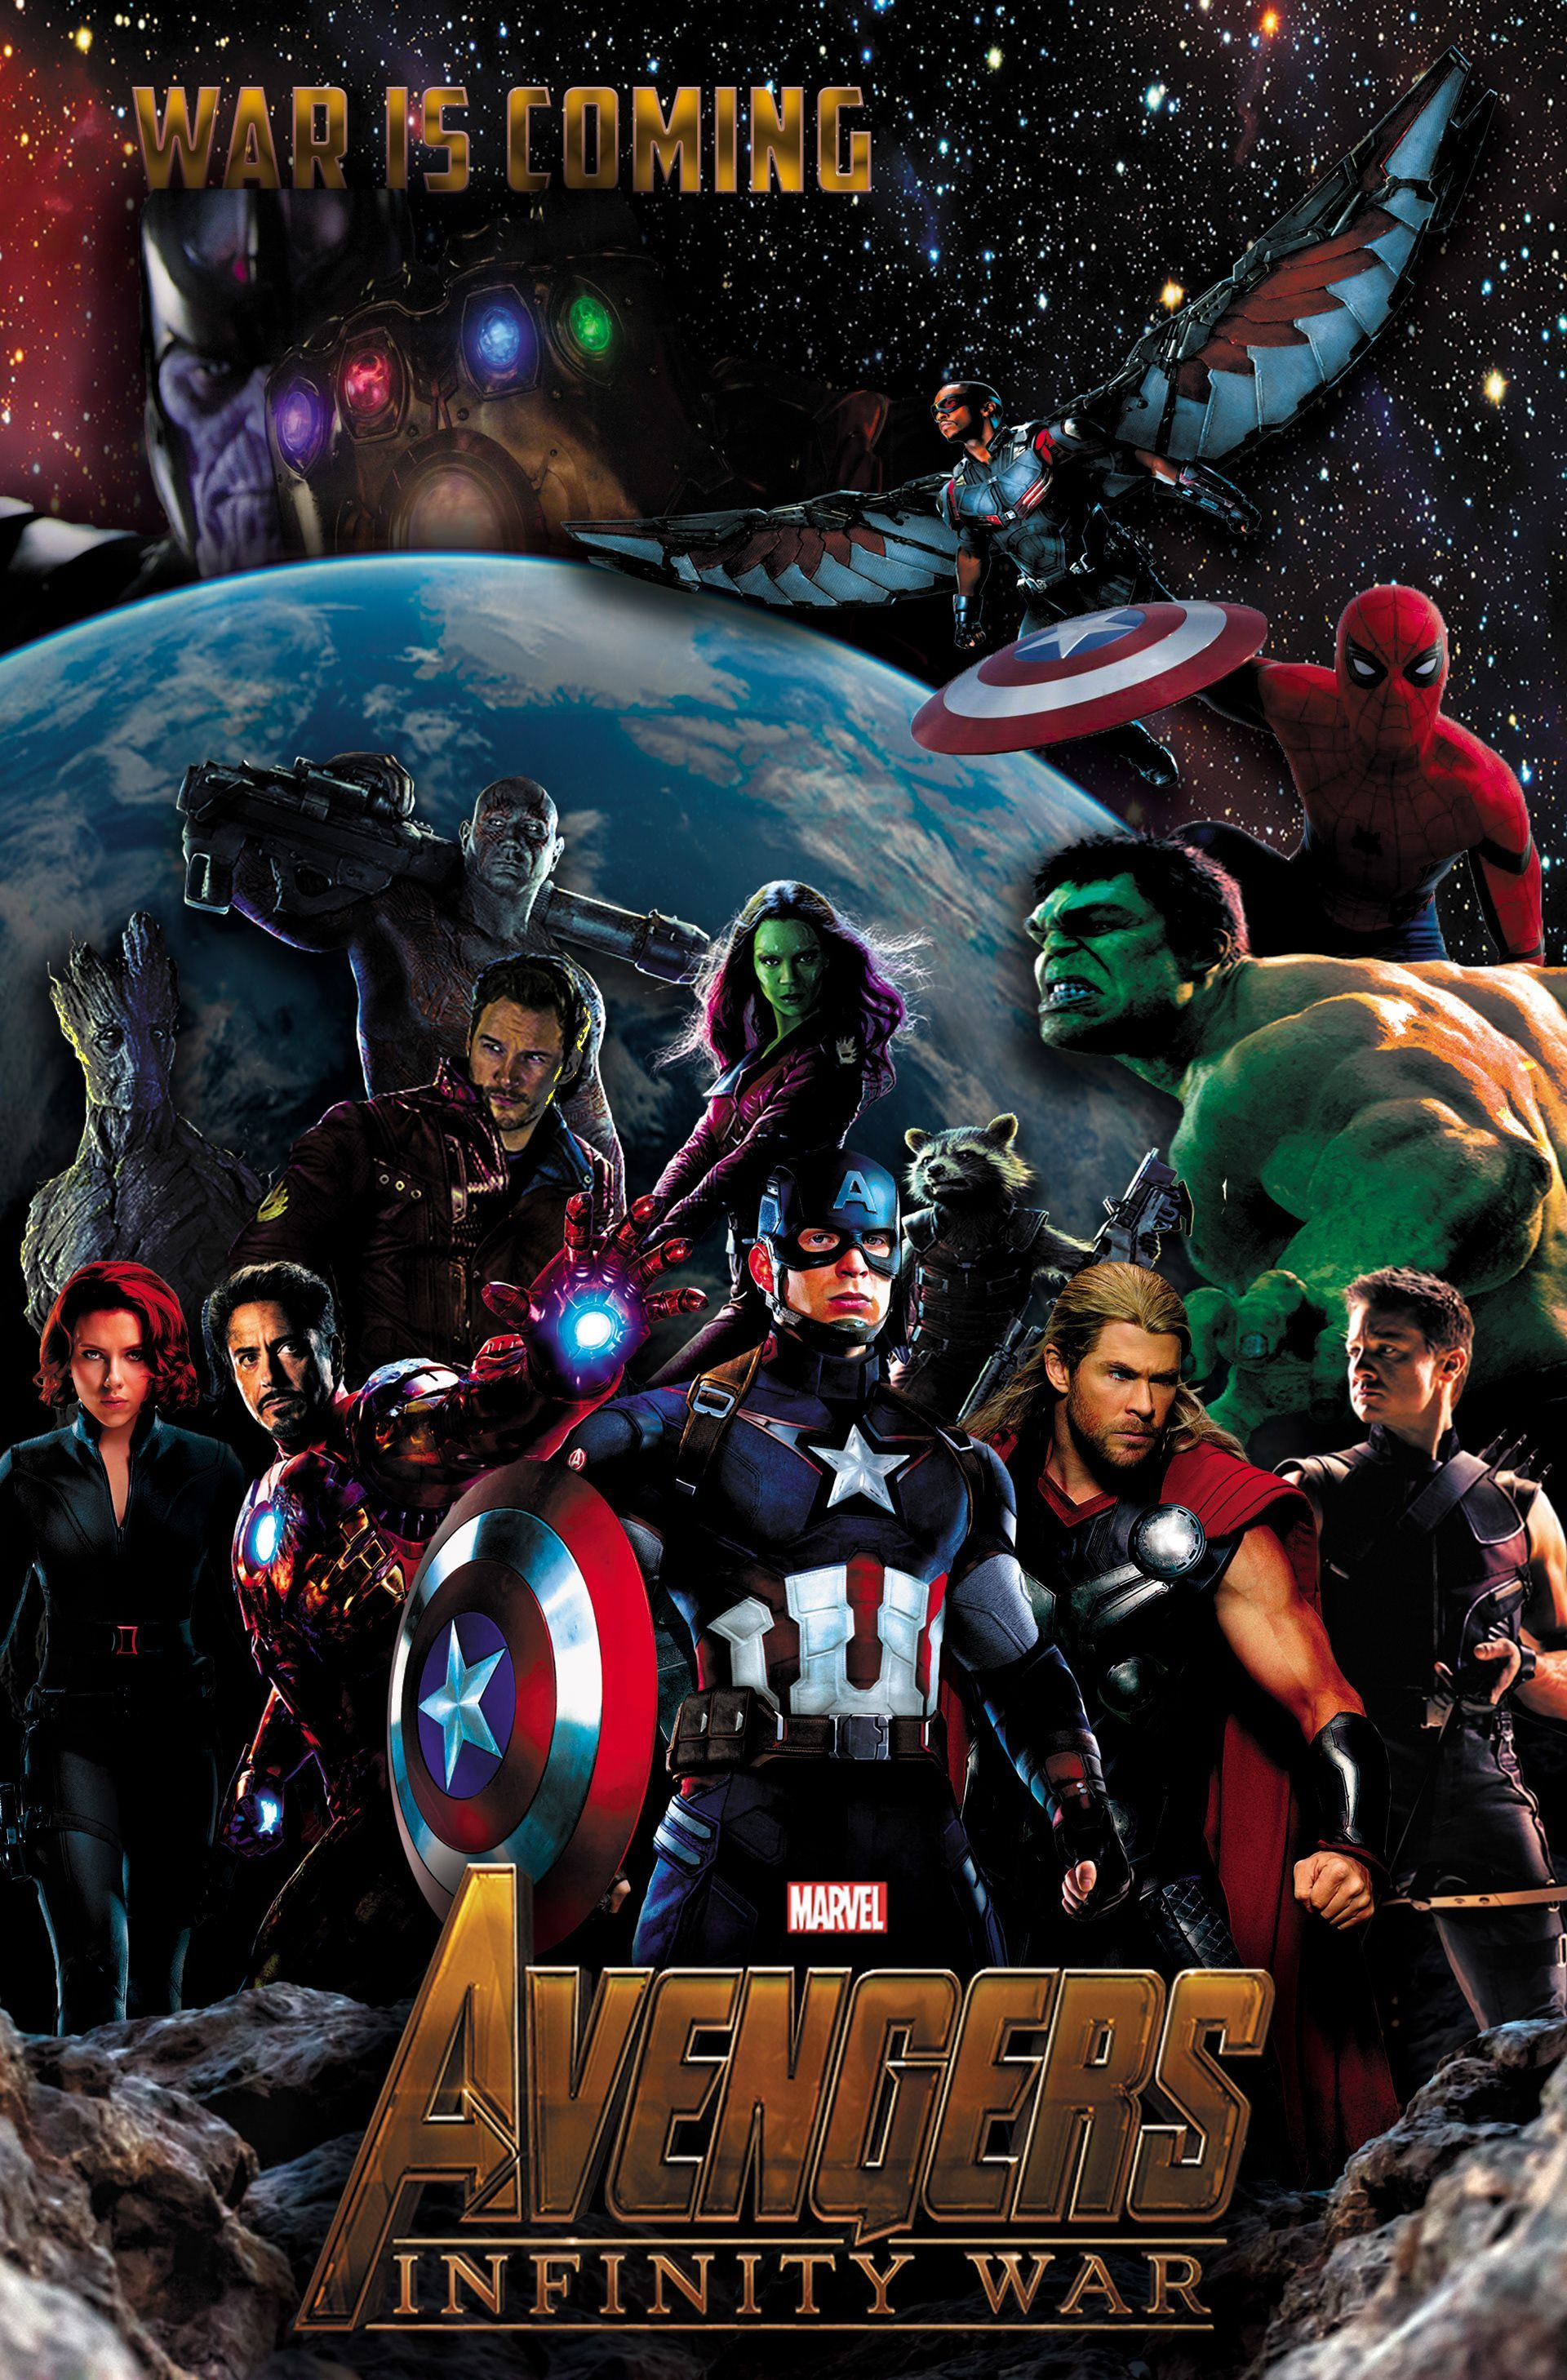 "1280x768 Avengers Infinity War 2018 All Characters Poster wallpapers ..."">"